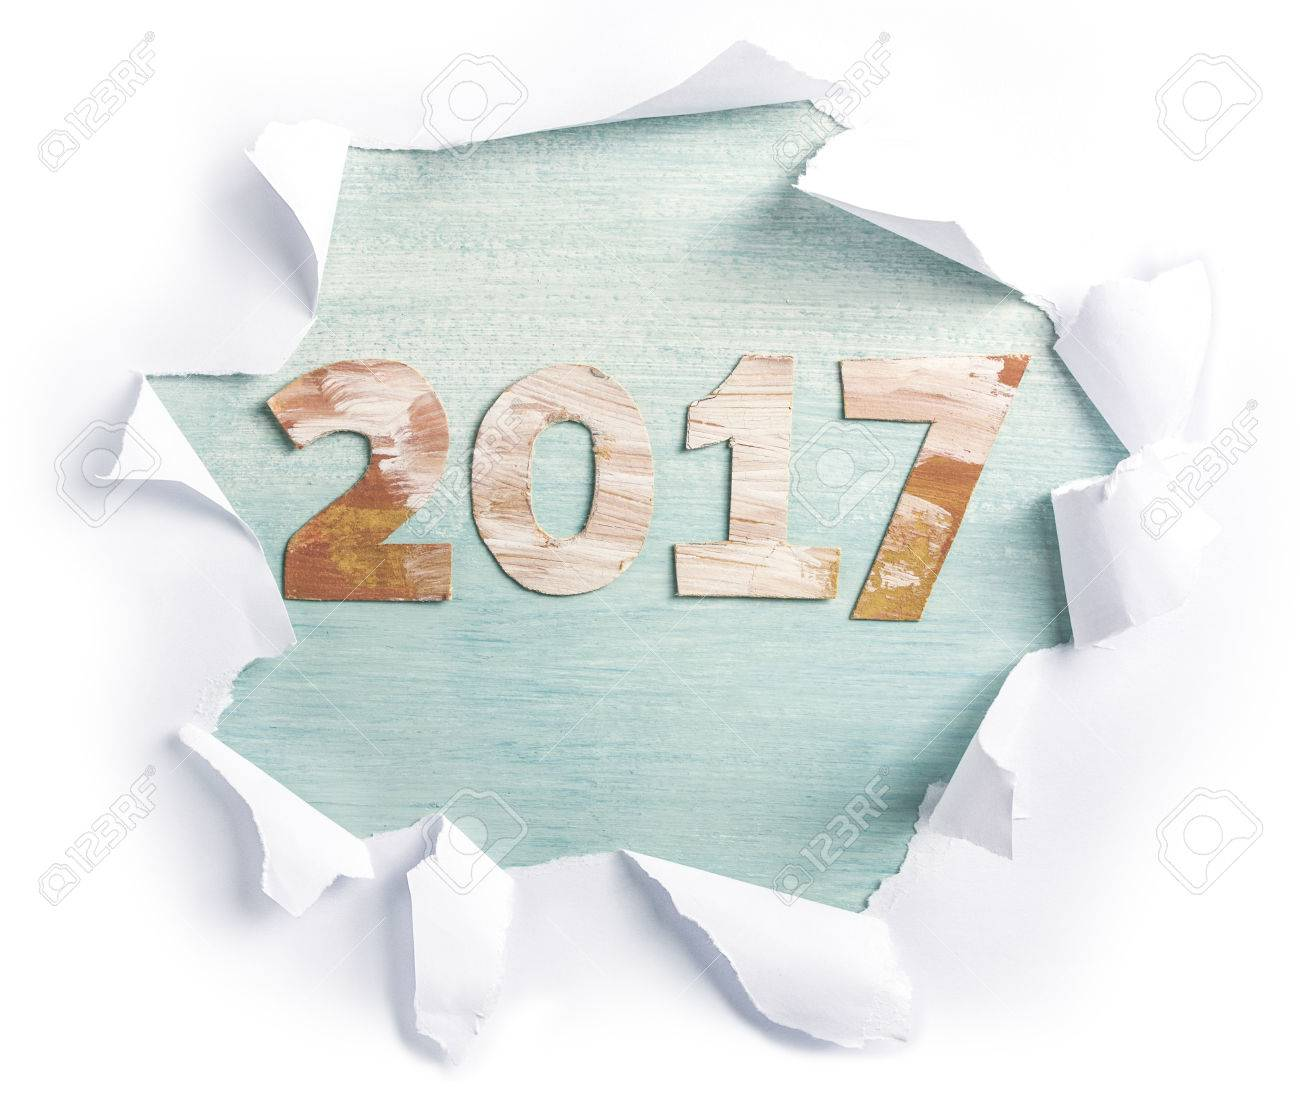 Photo of numbers forming '2017', cut out of paper with golden and white paint strokes, shot from above on light teal background, with torn paper on it. New Year greeting card or annual report design - 63701756